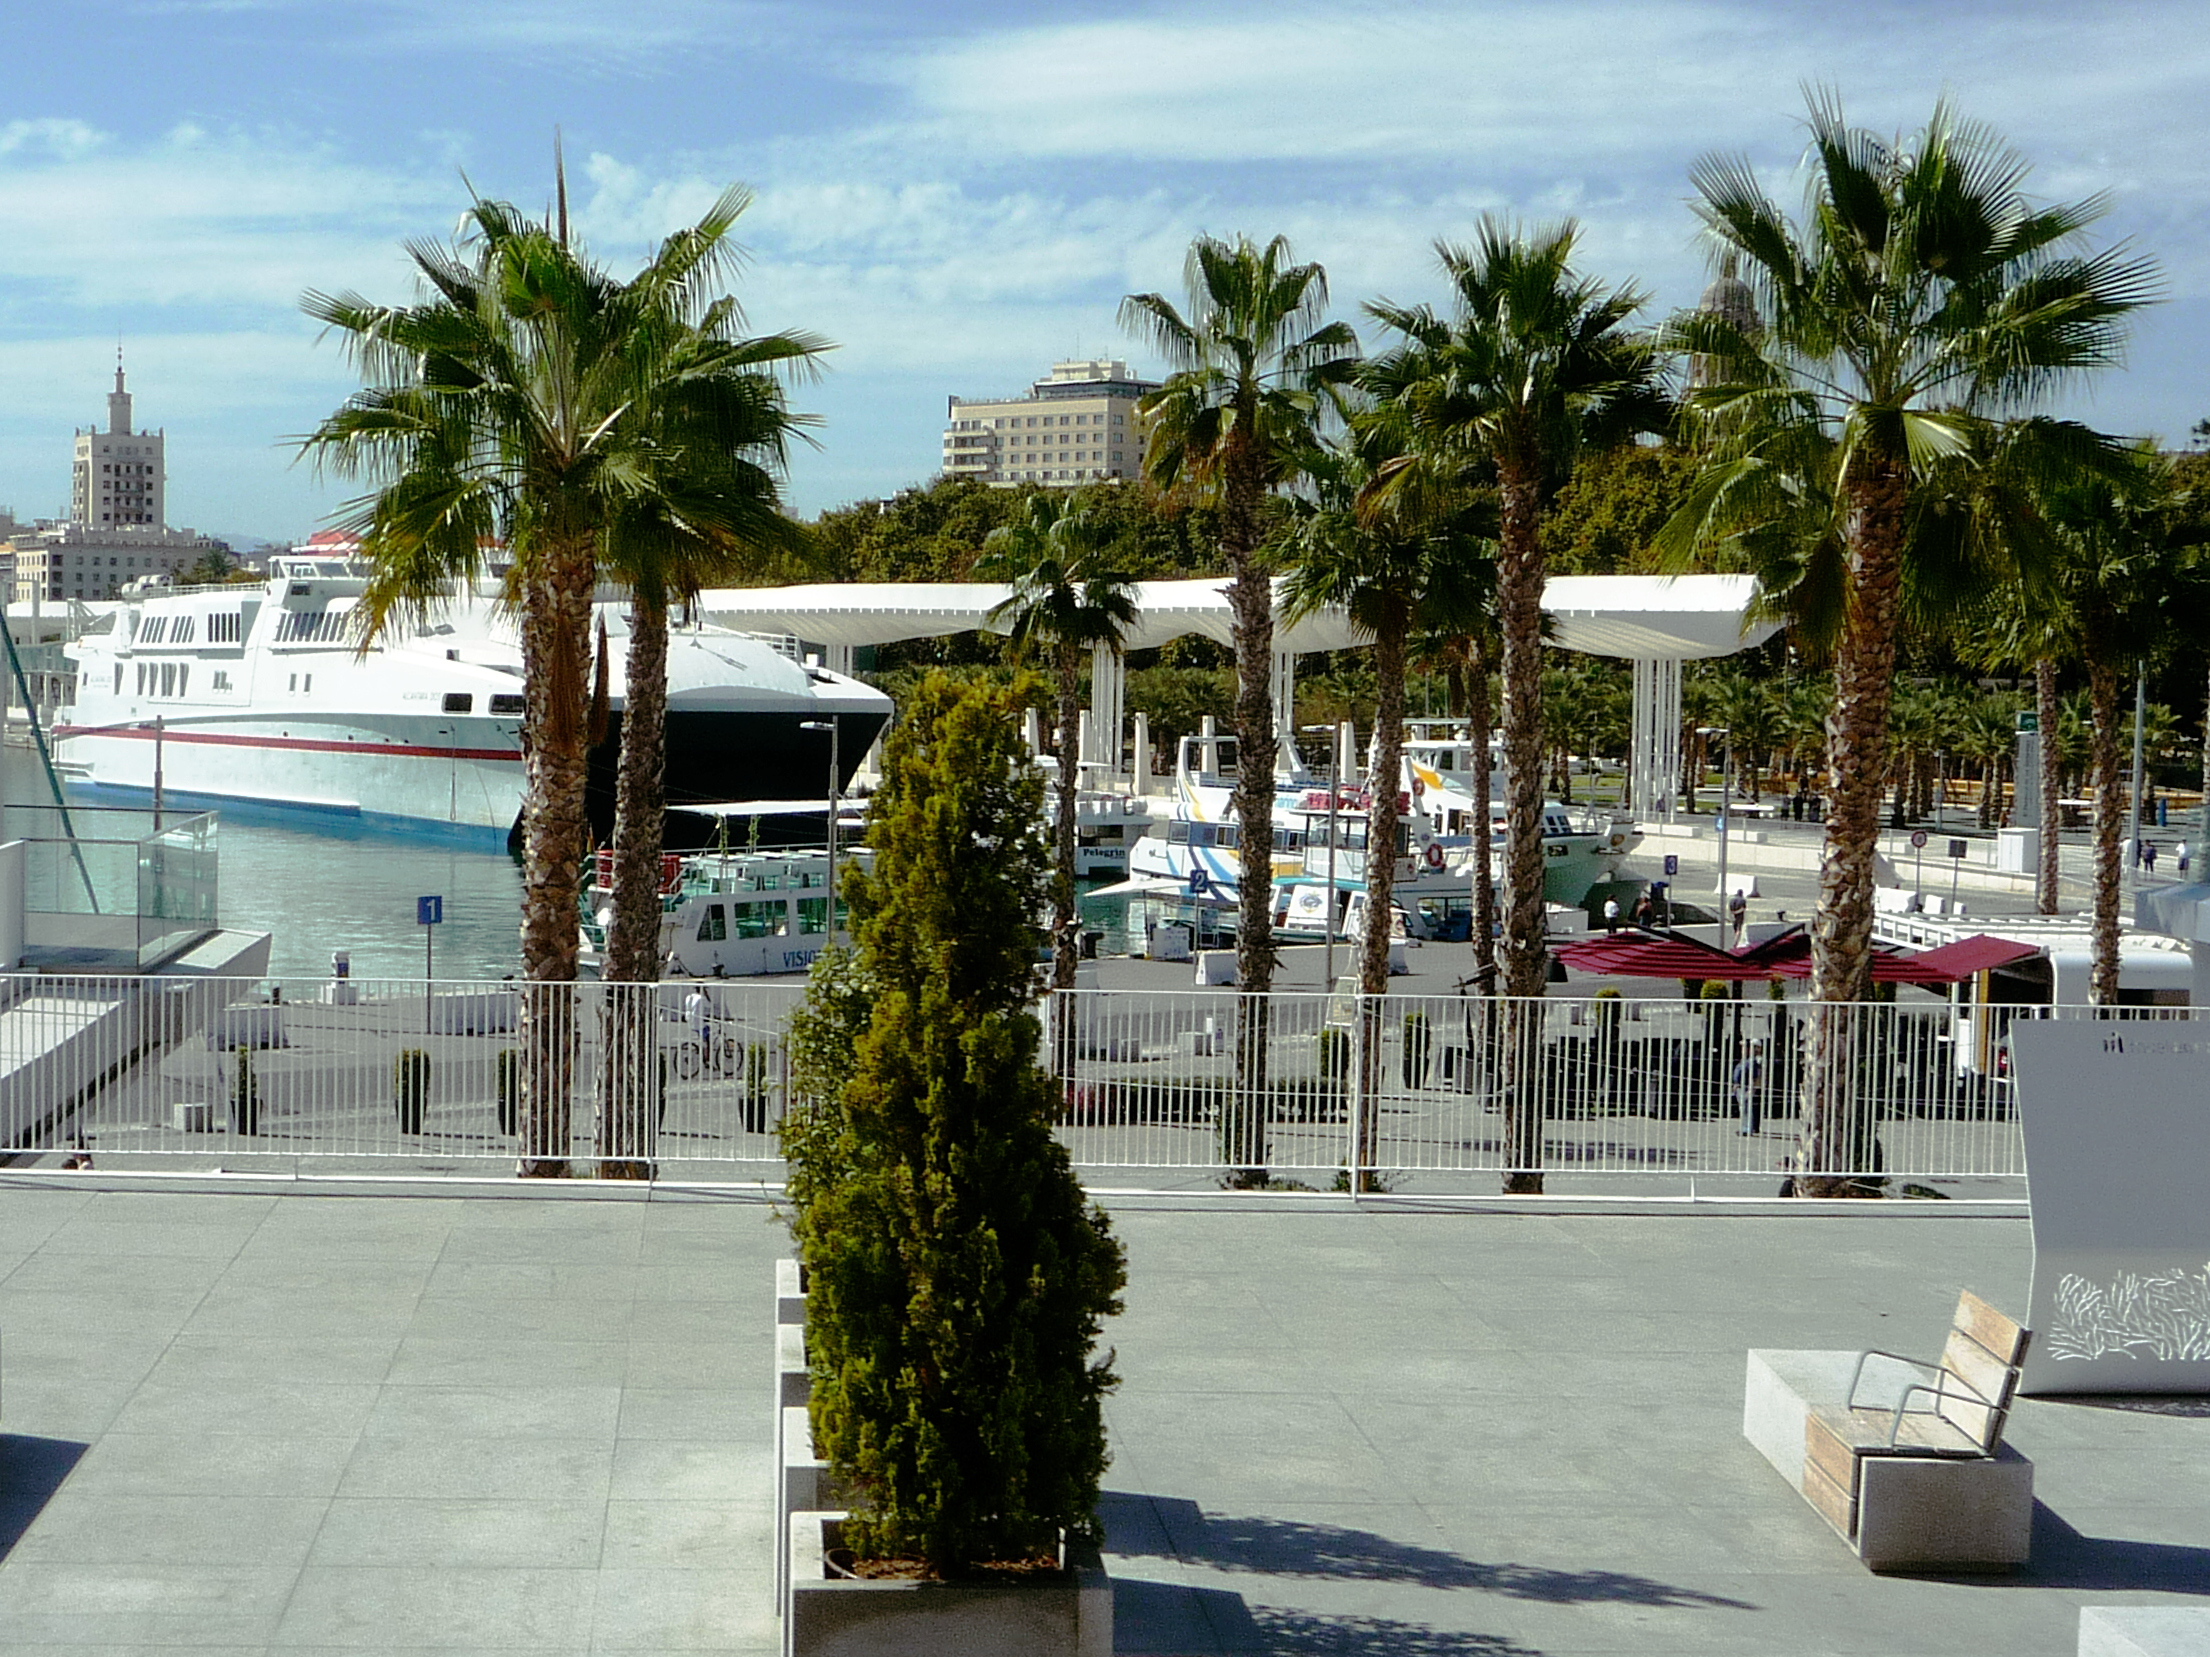 https://upload.wikimedia.org/wikipedia/commons/f/f2/Malaga_Hafen_04_%2811937541946%29.jpg